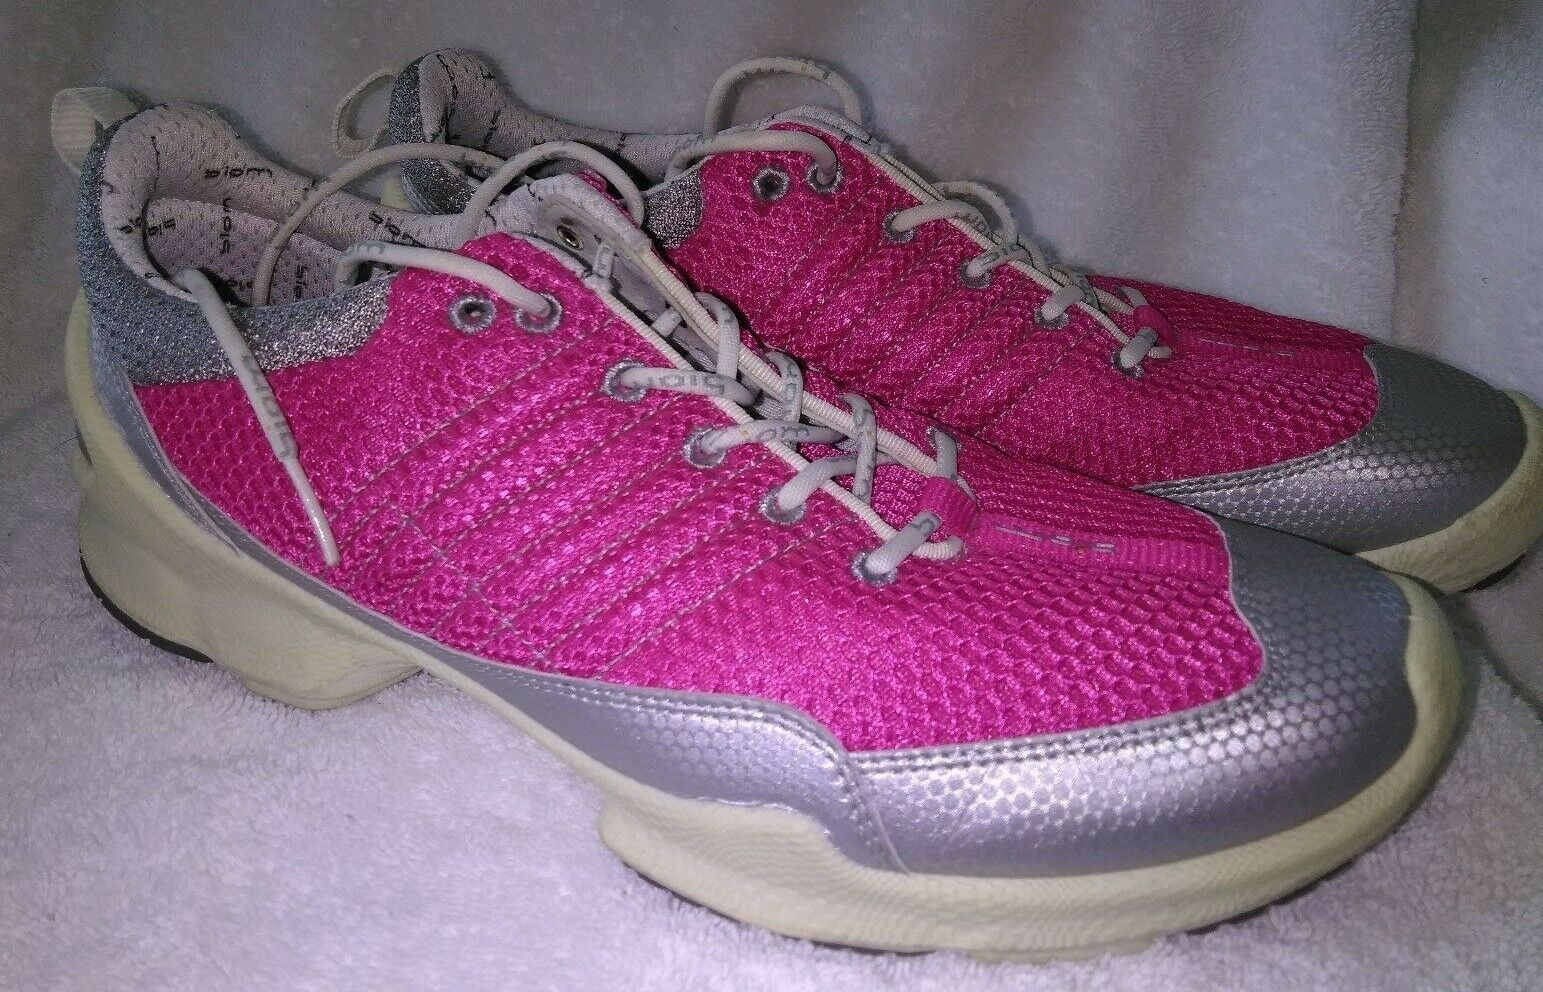 ECCO BIOM TRAIN Women's shoes Sneakers US 9 10 Very Good condition